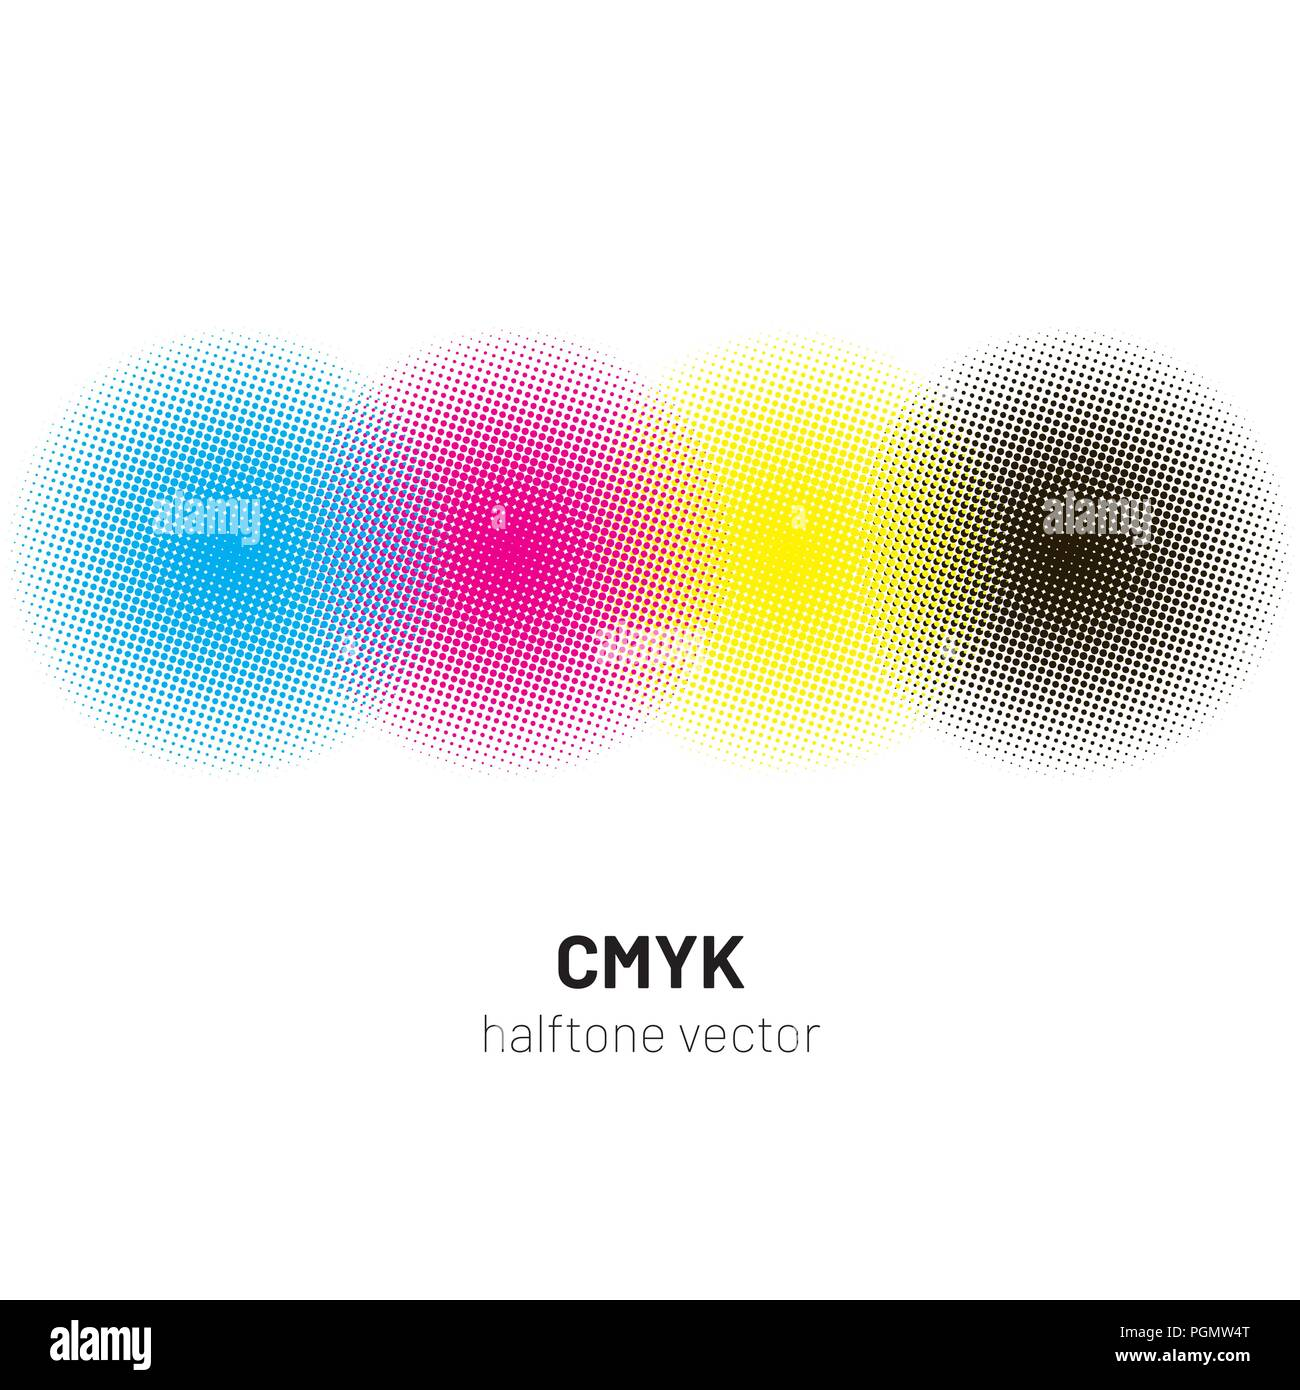 CMYK halftone rounds background vector - Stock Image